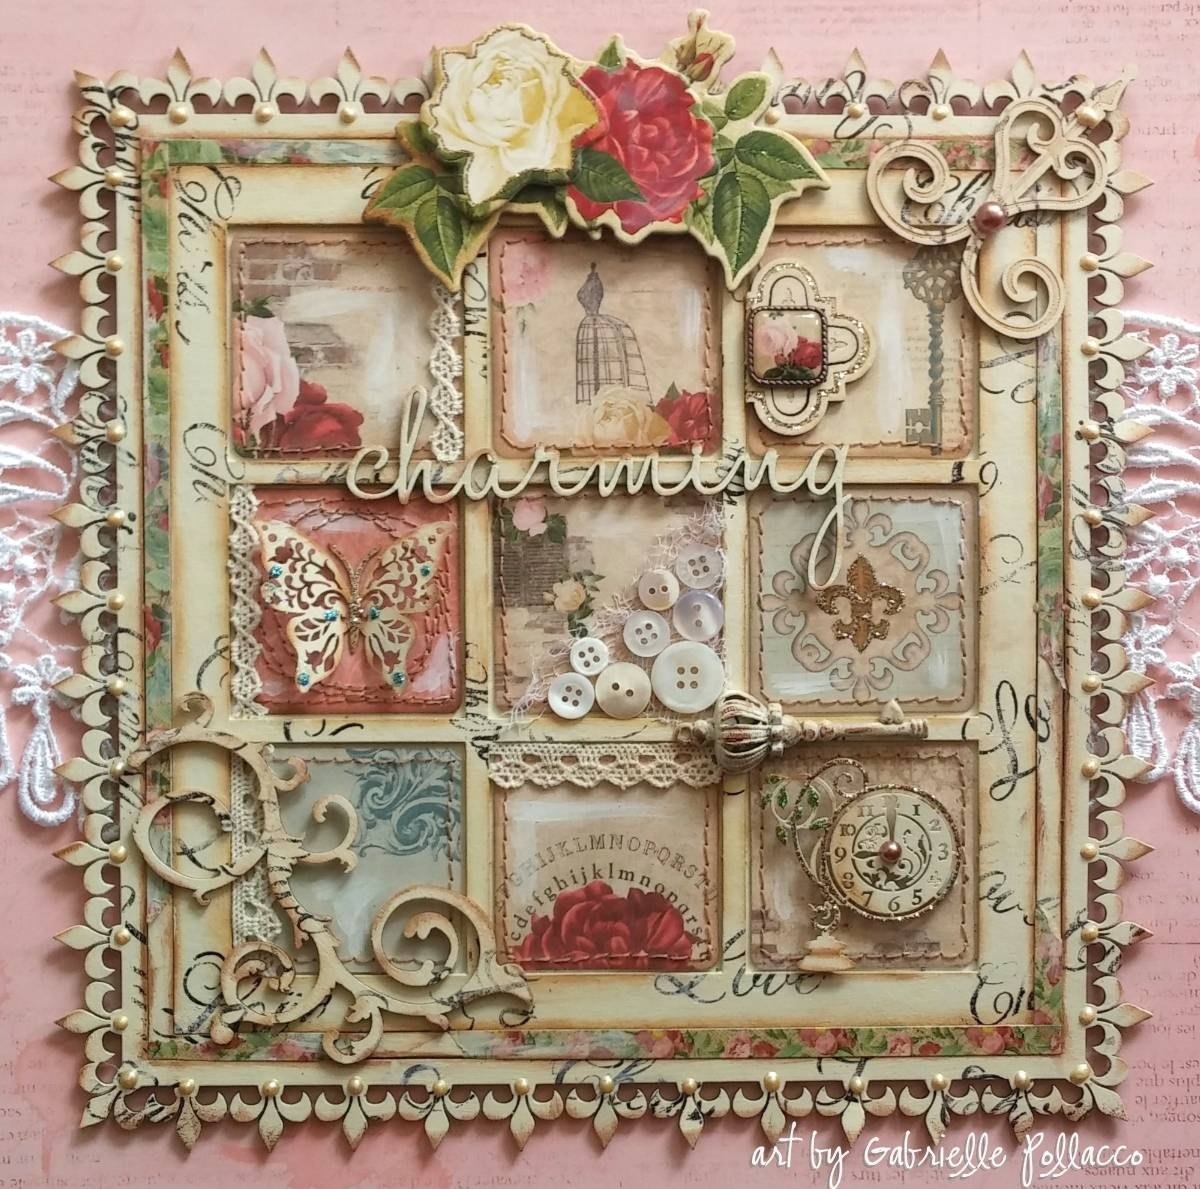 Bobunny: Shabby Chic Juliet Wall Art Throughout Best And Newest Shabby Chic Wall Art (View 9 of 30)